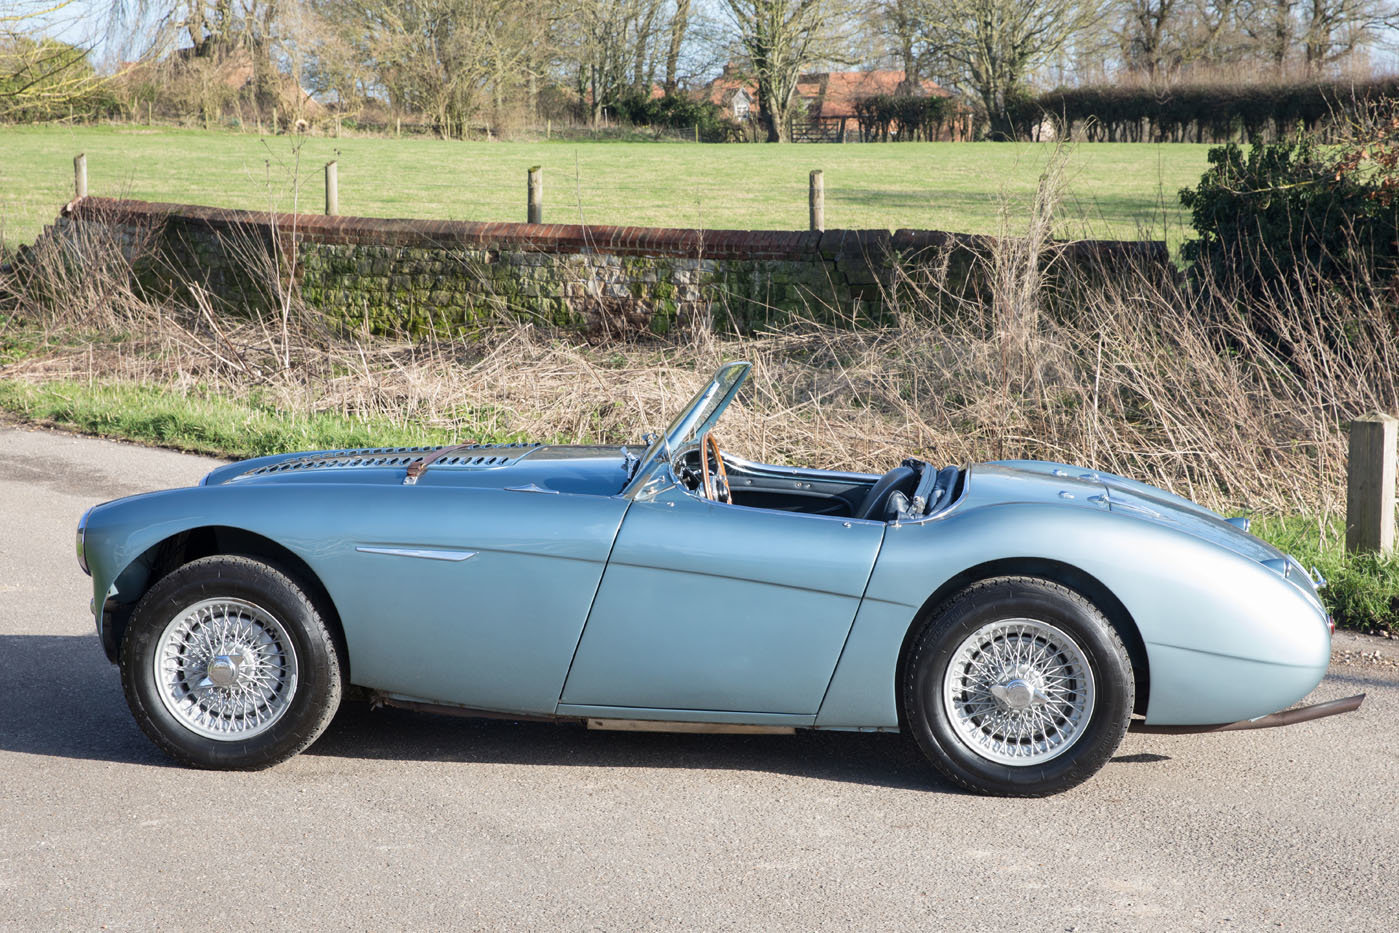 1955 Austin Healey 100/4 BN2 | Healey Blue, M Specification SOLD (picture 4 of 6)